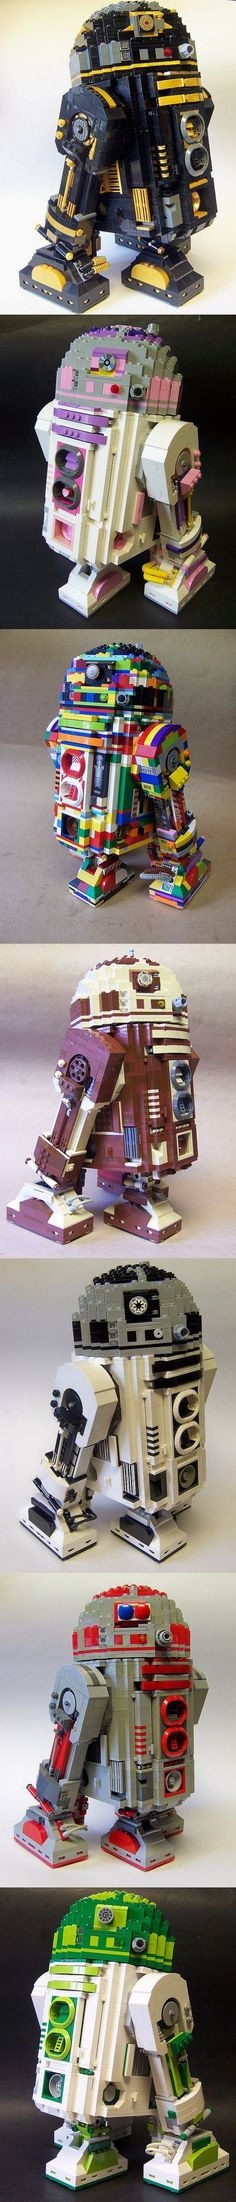 10 Star Wars Lego Pictures to Nerd Out On Check more at